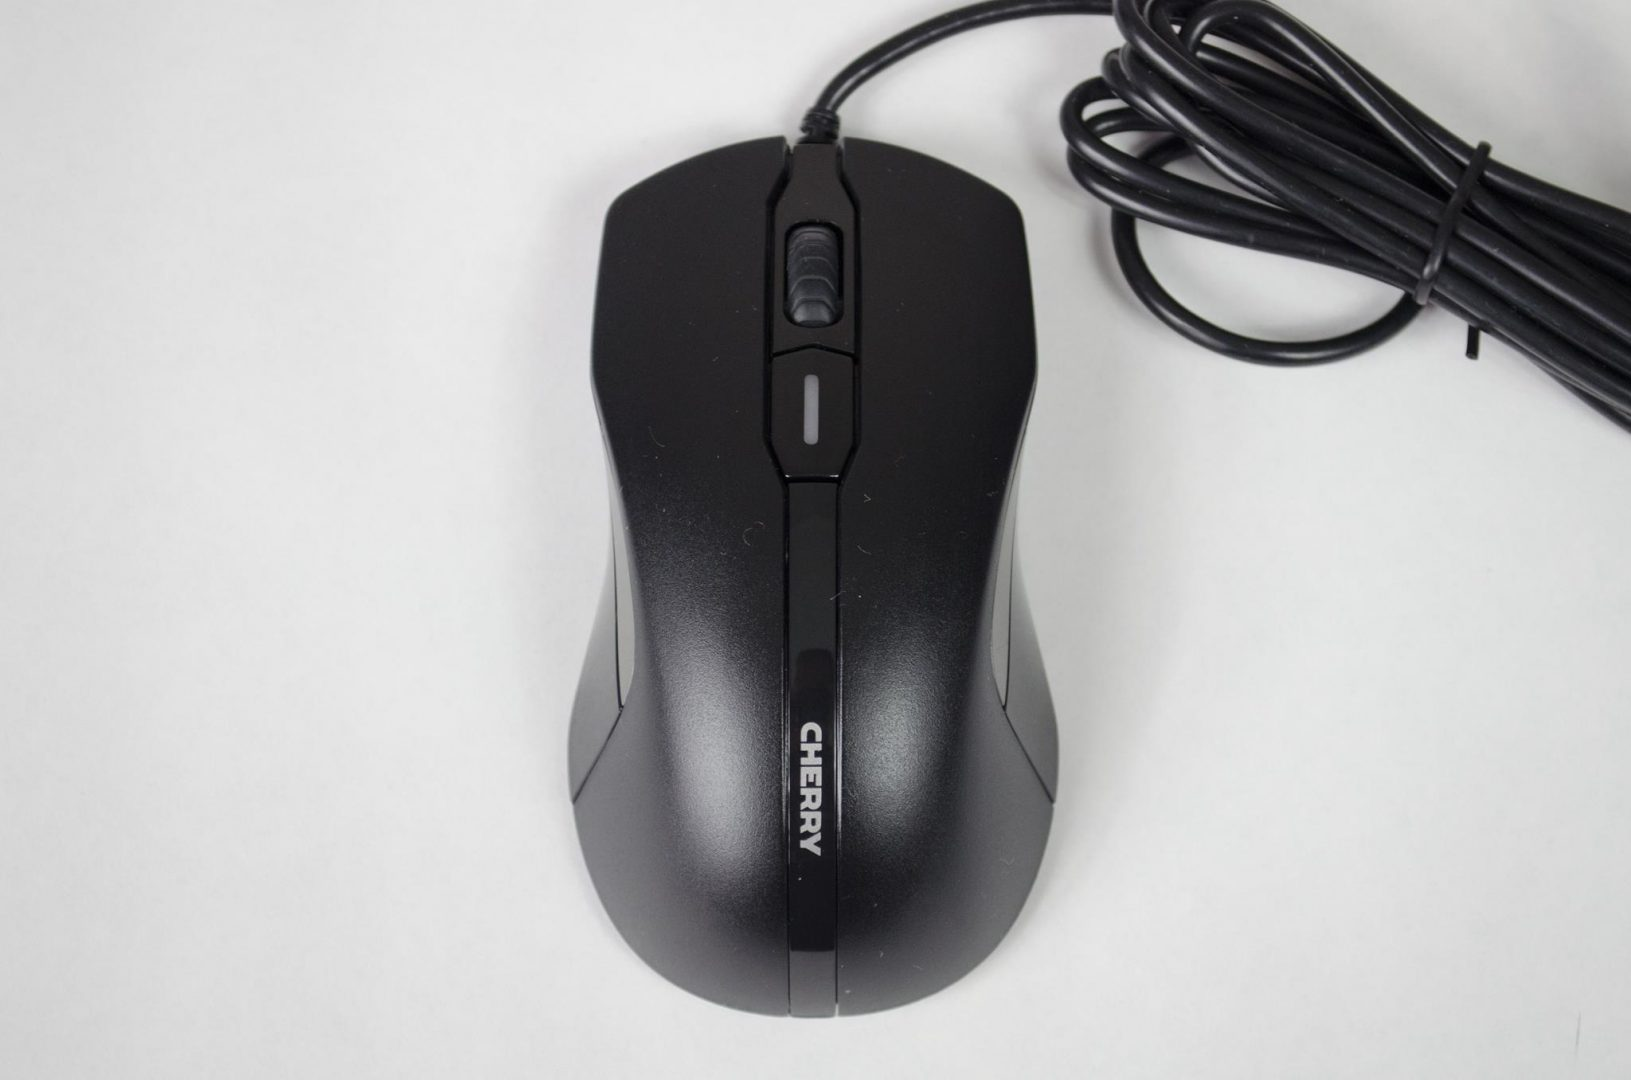 cherry mc 4000 gaming mouse_5